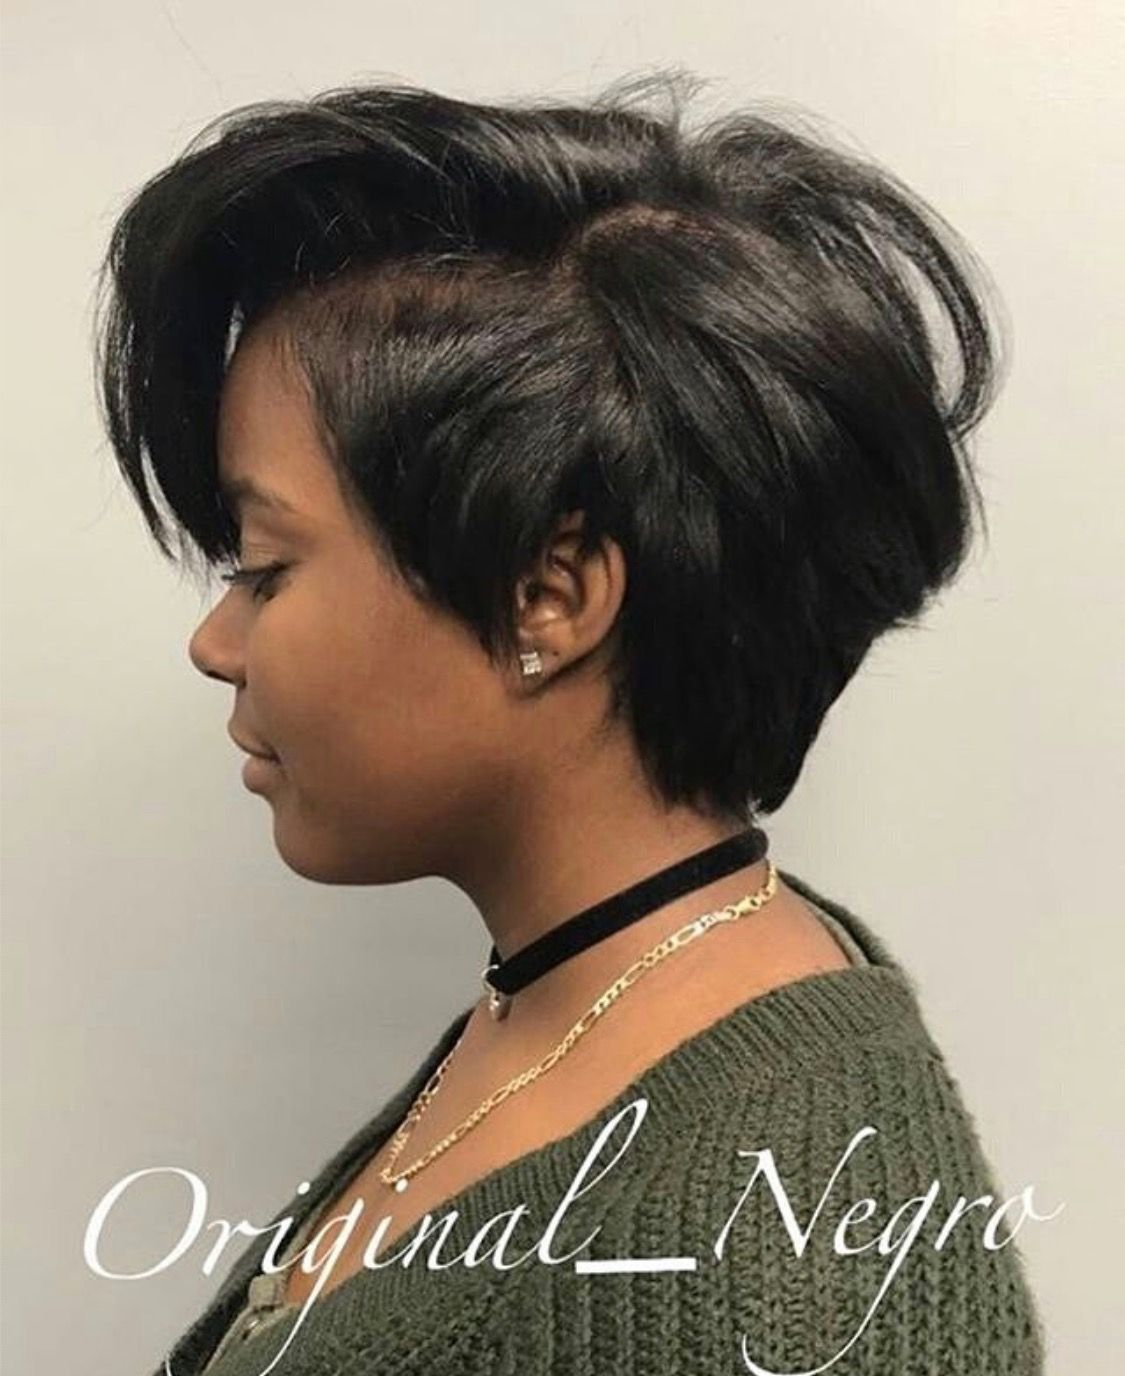 Pinterest Rebelwithstyle Straight Hairstyles Natural Hair Styles Hair Styles